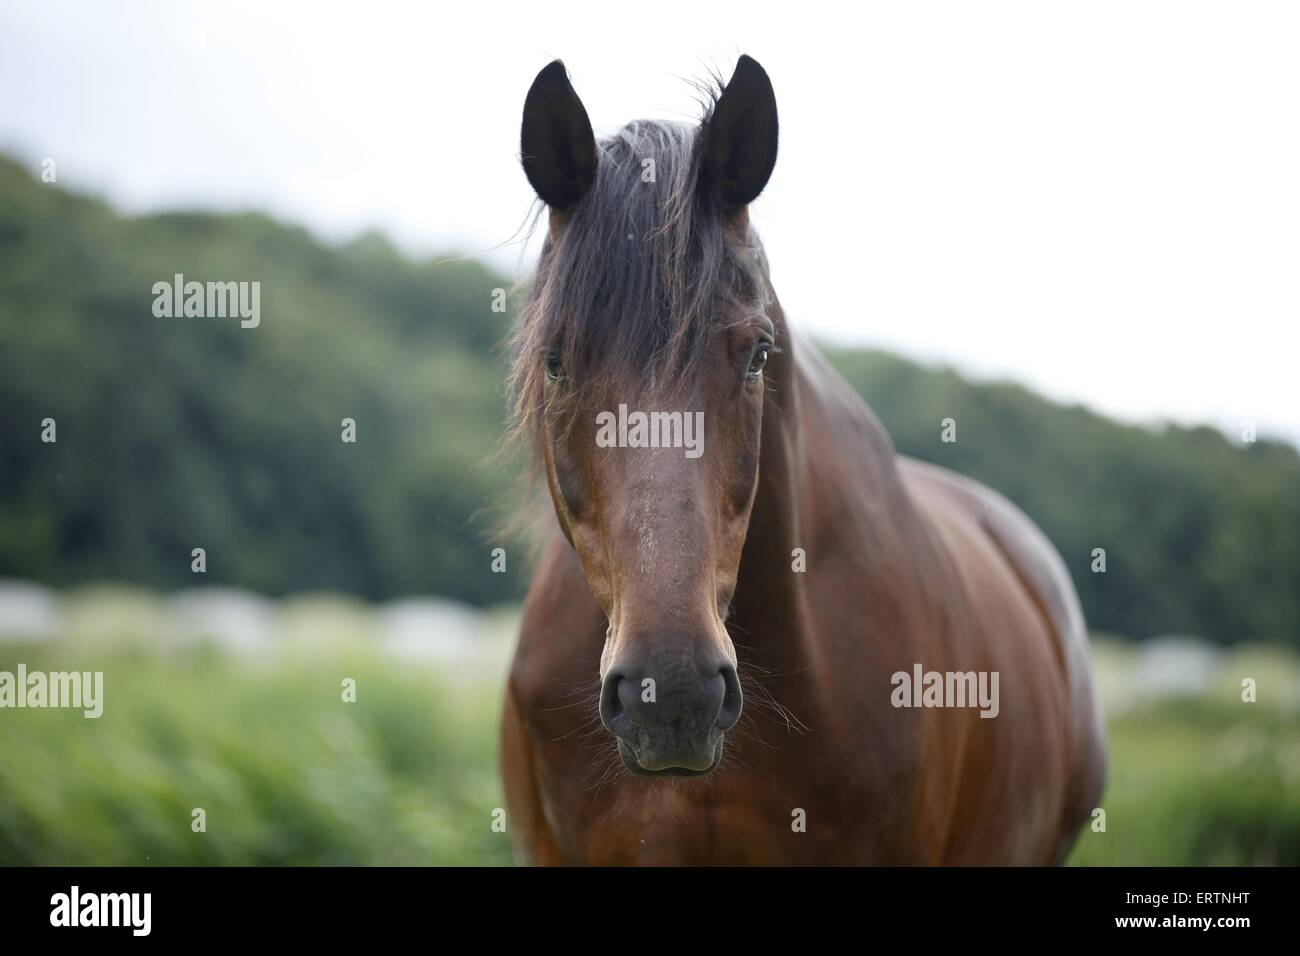 english thoroughbred portrait - Stock Image